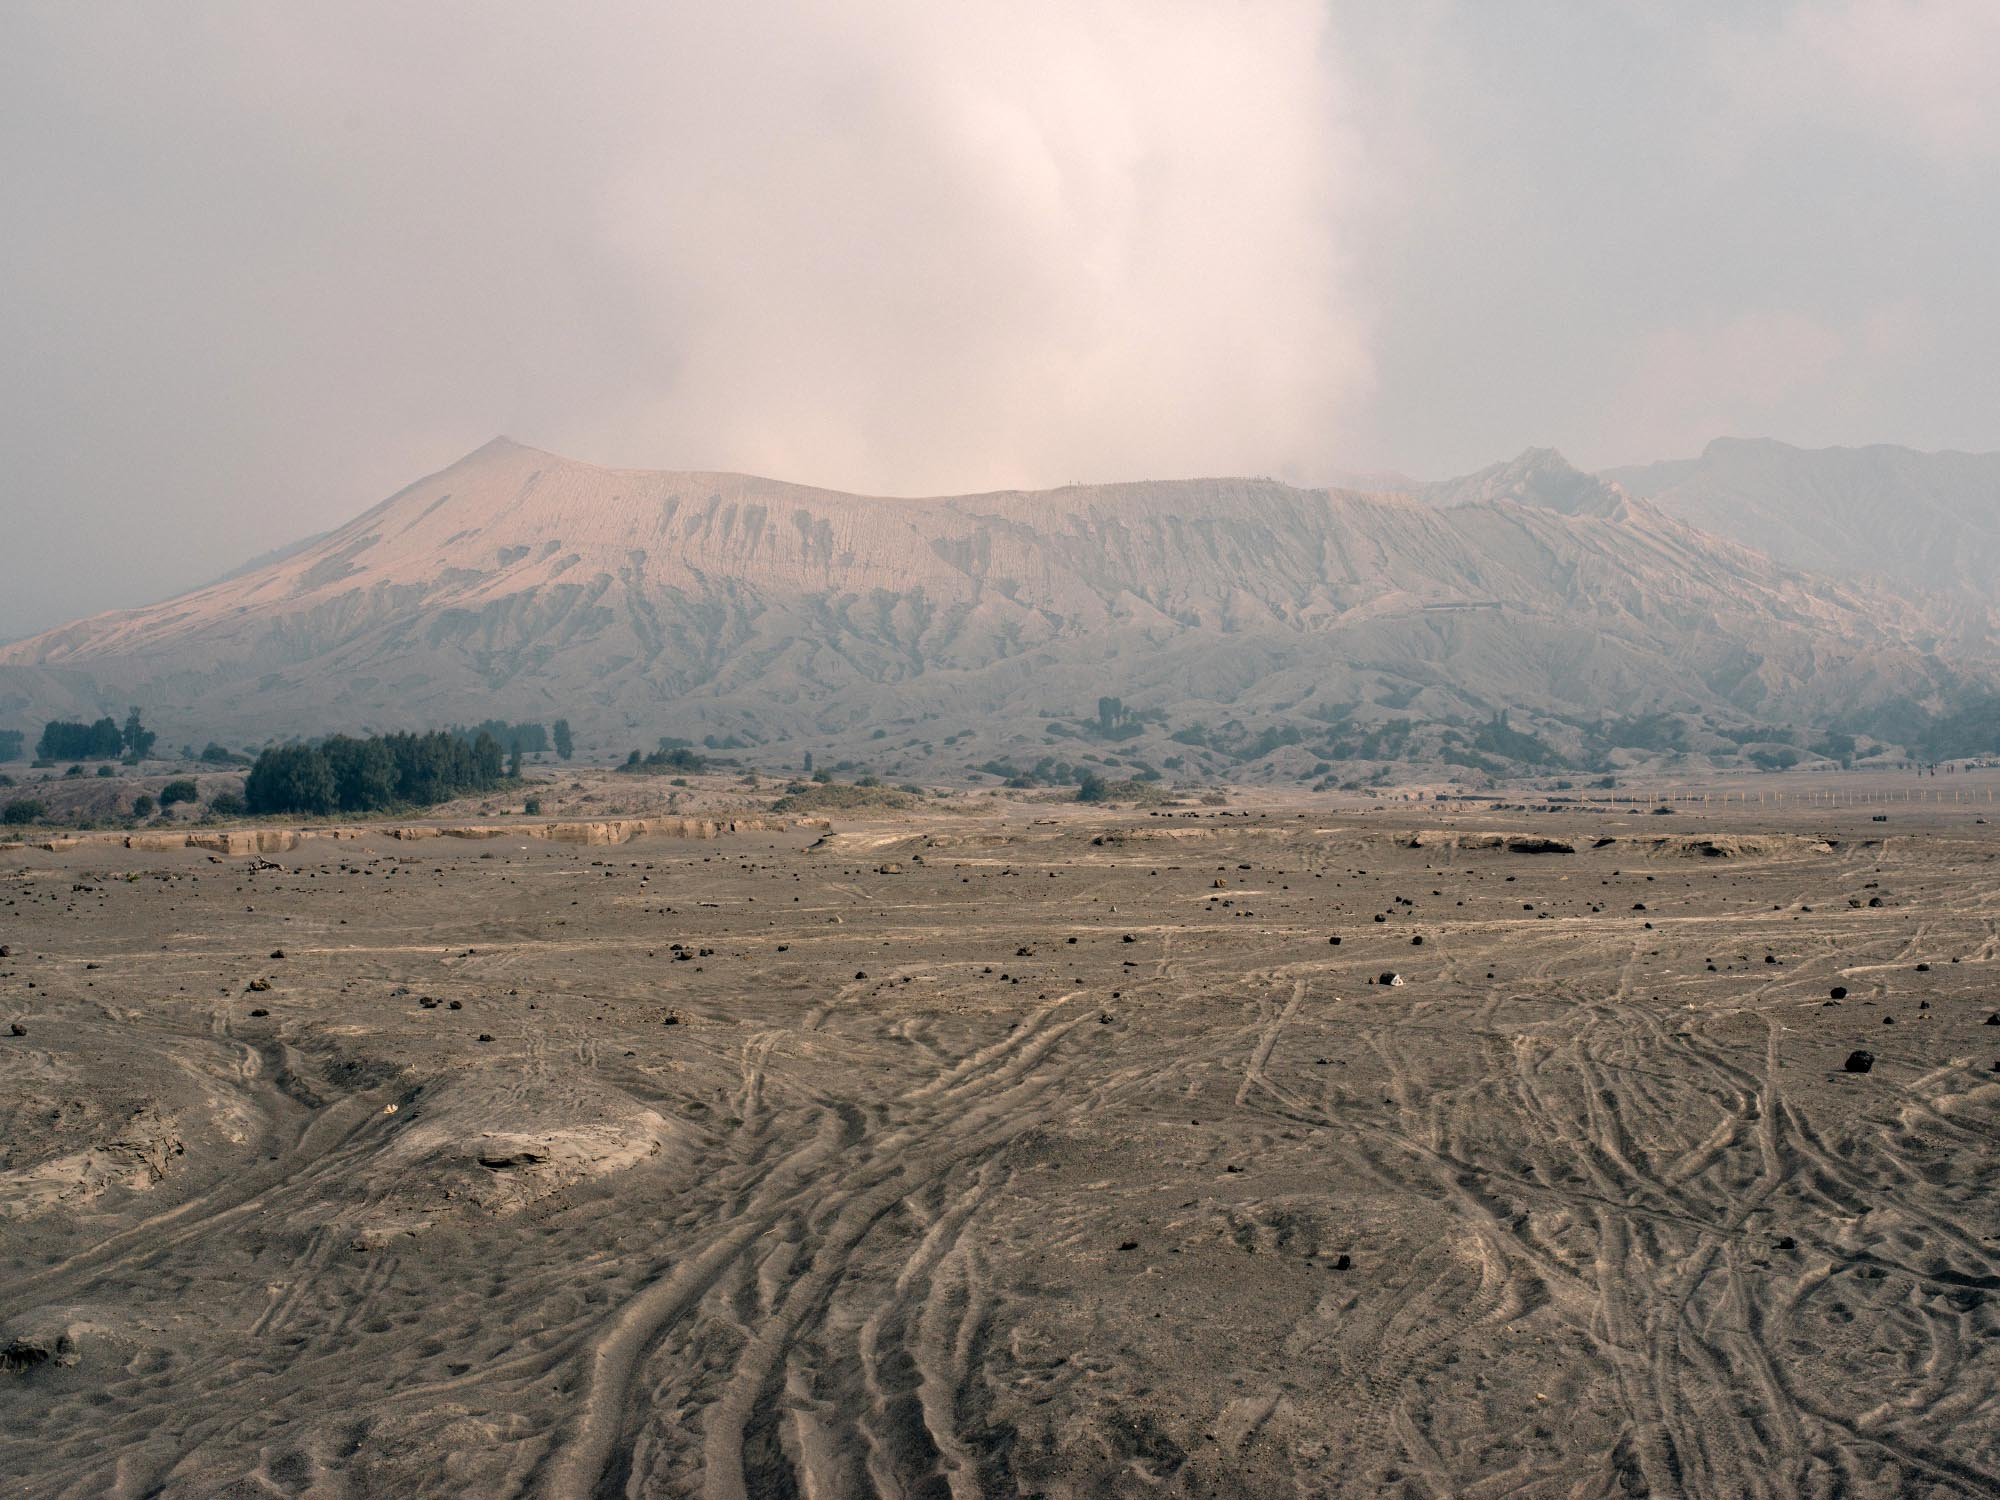 Sea of Sand with Mount Bromo in the background.